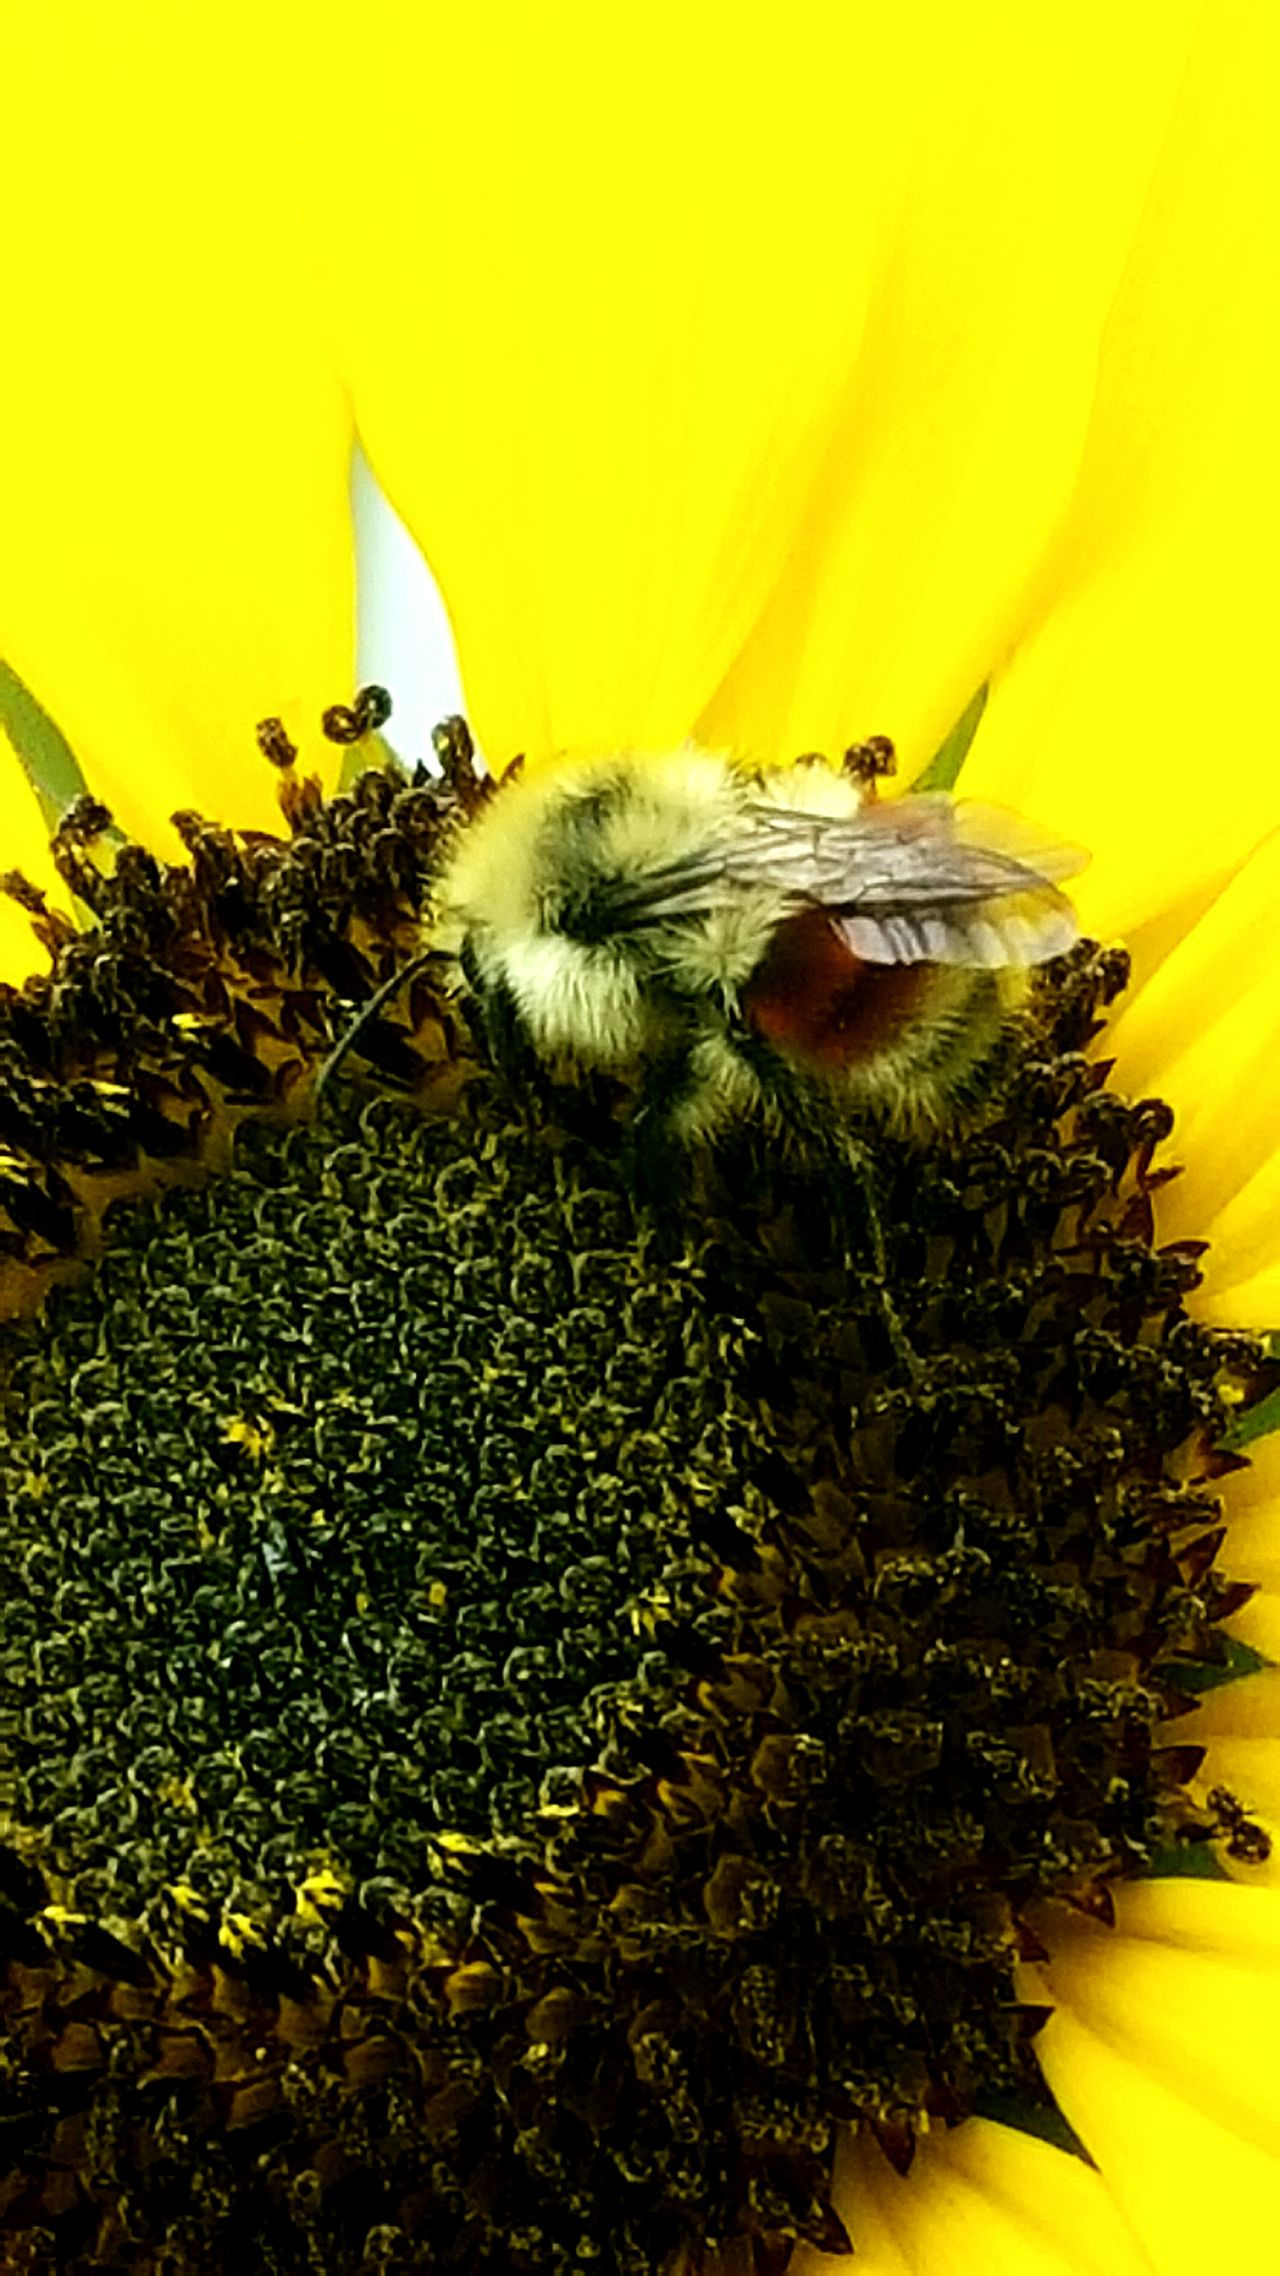 Sunflower Bumble Bee Collecting Pollen Bumblebee Flowers,Plants & Garden Yellow Flower Nature Photography Bee Insect Photography Bright Colors Colour Of Life Milenamulskephotography Color Palette Follow Please A Bird's Eye View I LOVE PHOTOGRAPHY